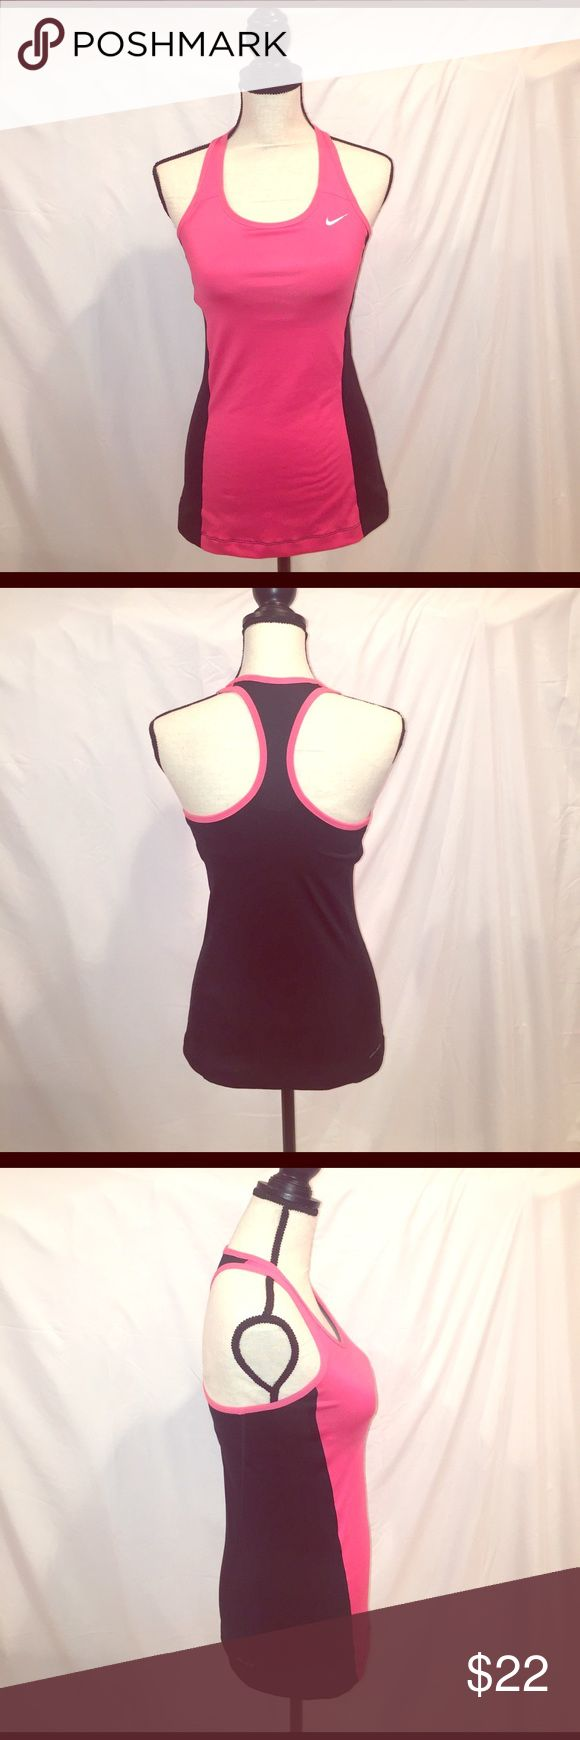 Nike Dri Fit Razorback Tank Top/Bra EUC Nike Dri Fit Razorback Tank Top/Bra EUC. The Nike logo has lifted in one area and is in pic. Otherwise this tank/bra is flawless. It's the pinkish coral with black. Dark gray bra attached. Nike Tops Tank Tops